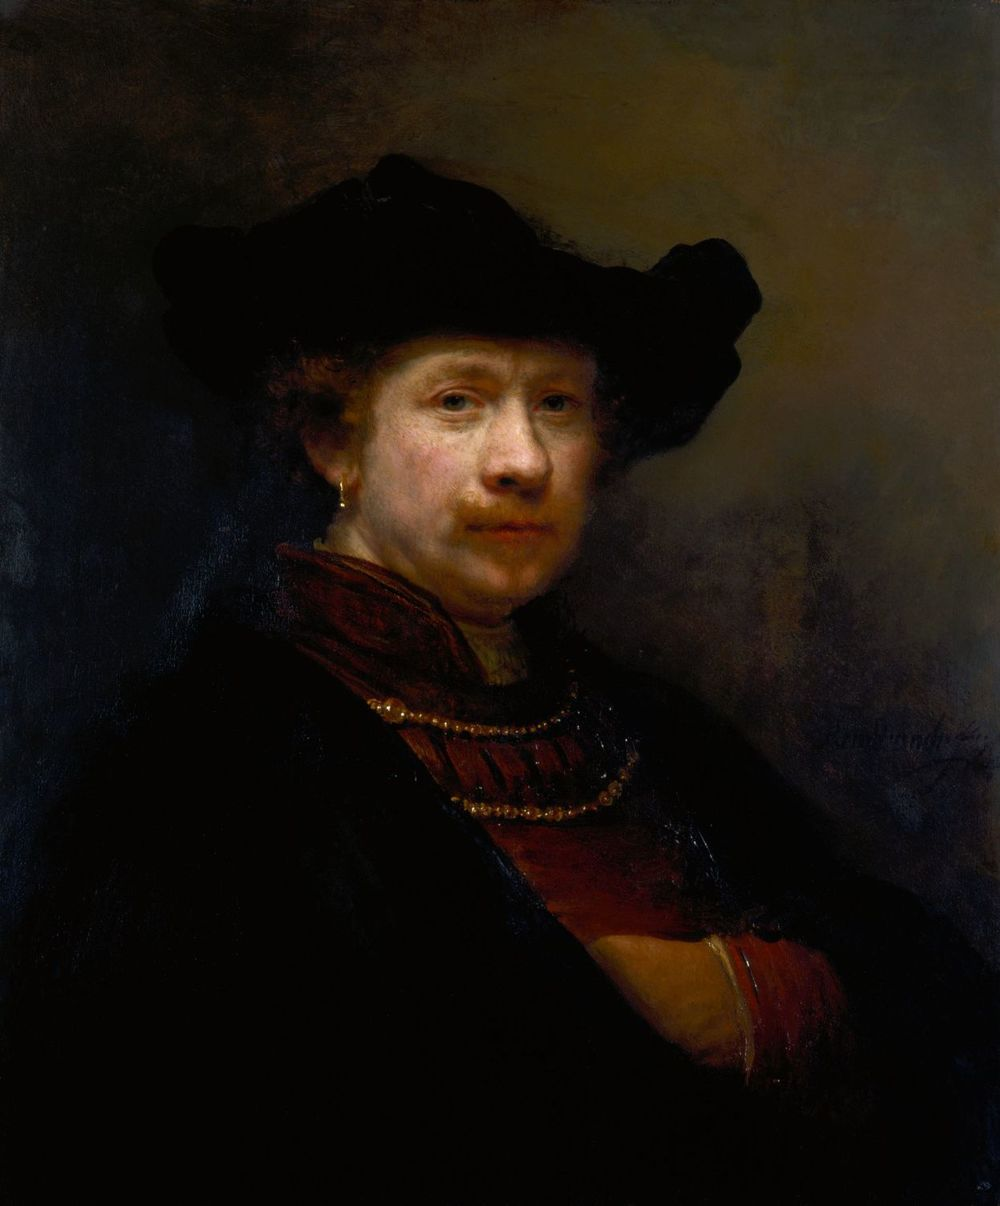 rembrandt and richard wagner project awe copy  rembrandt